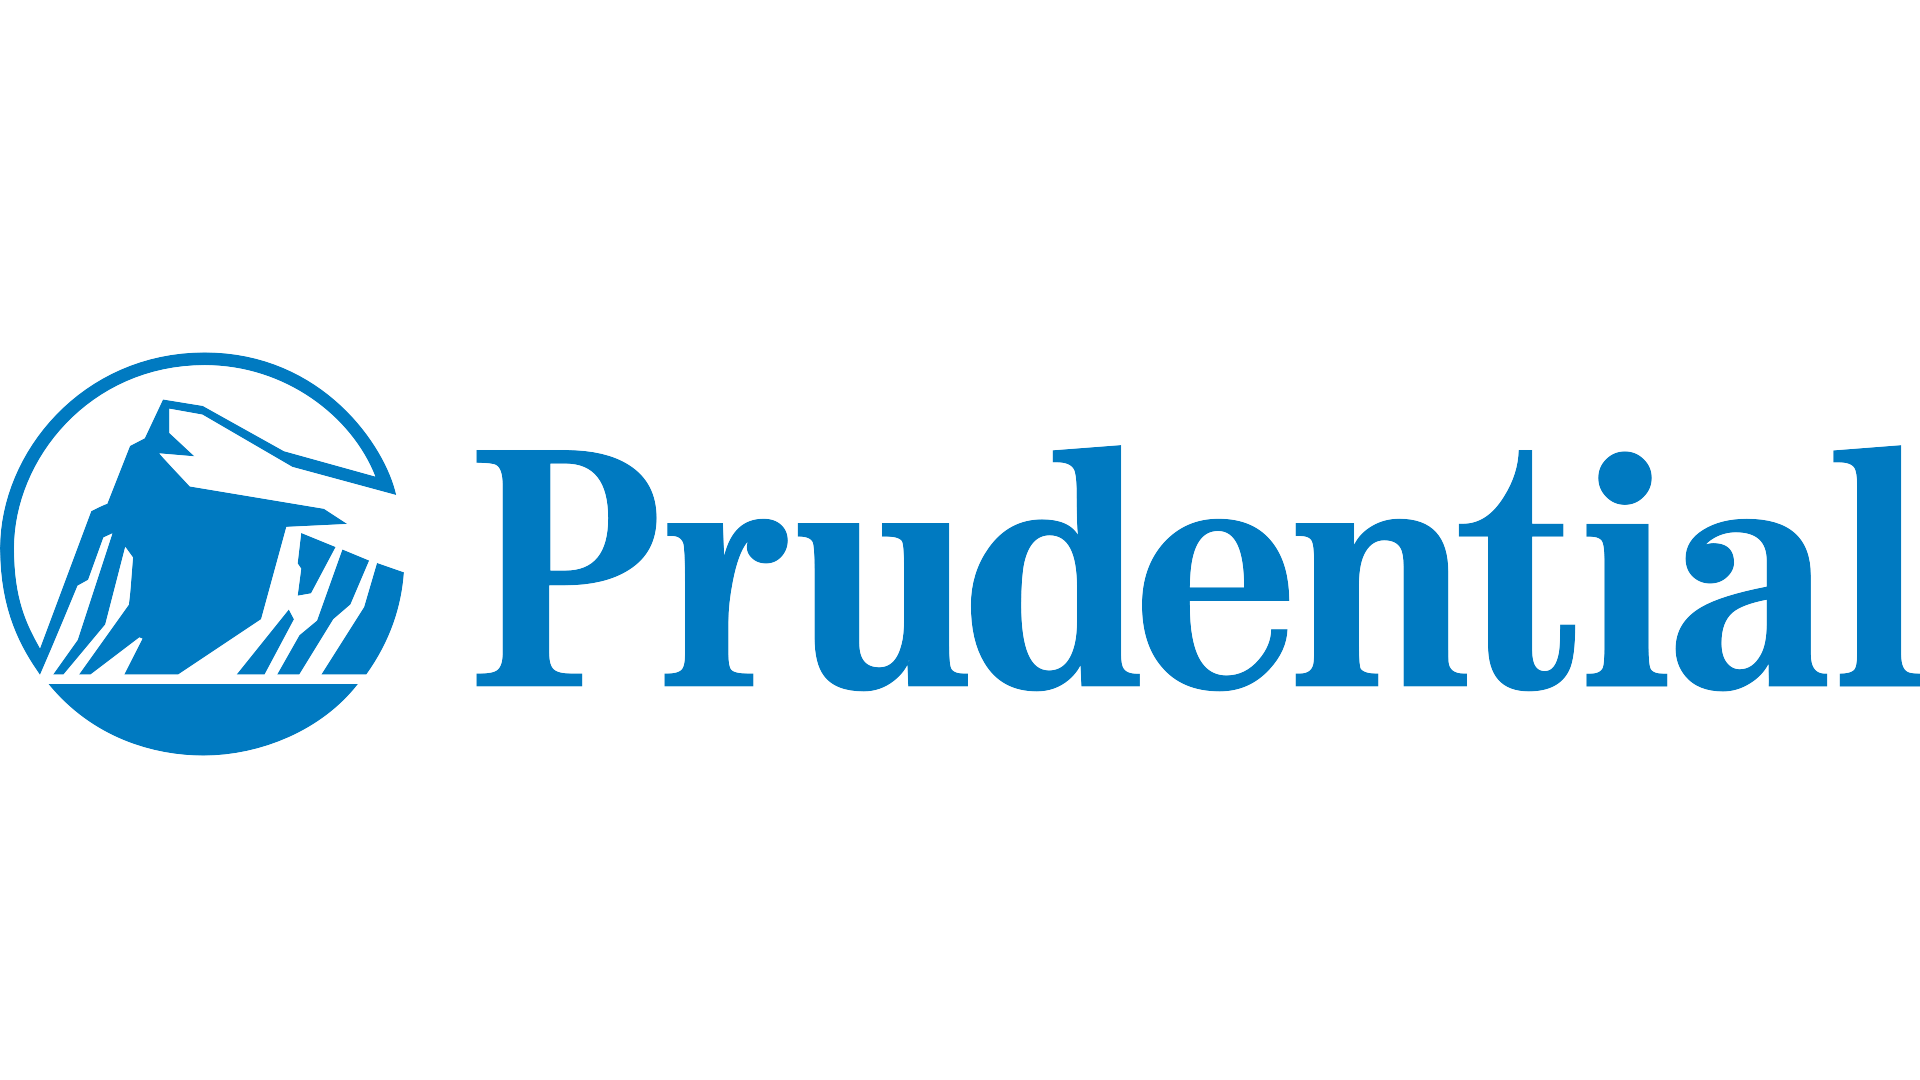 Watch the job video below to learn more about the career opening Take Your Tech Talents to New Heights at Prudential in Newark,   NJ